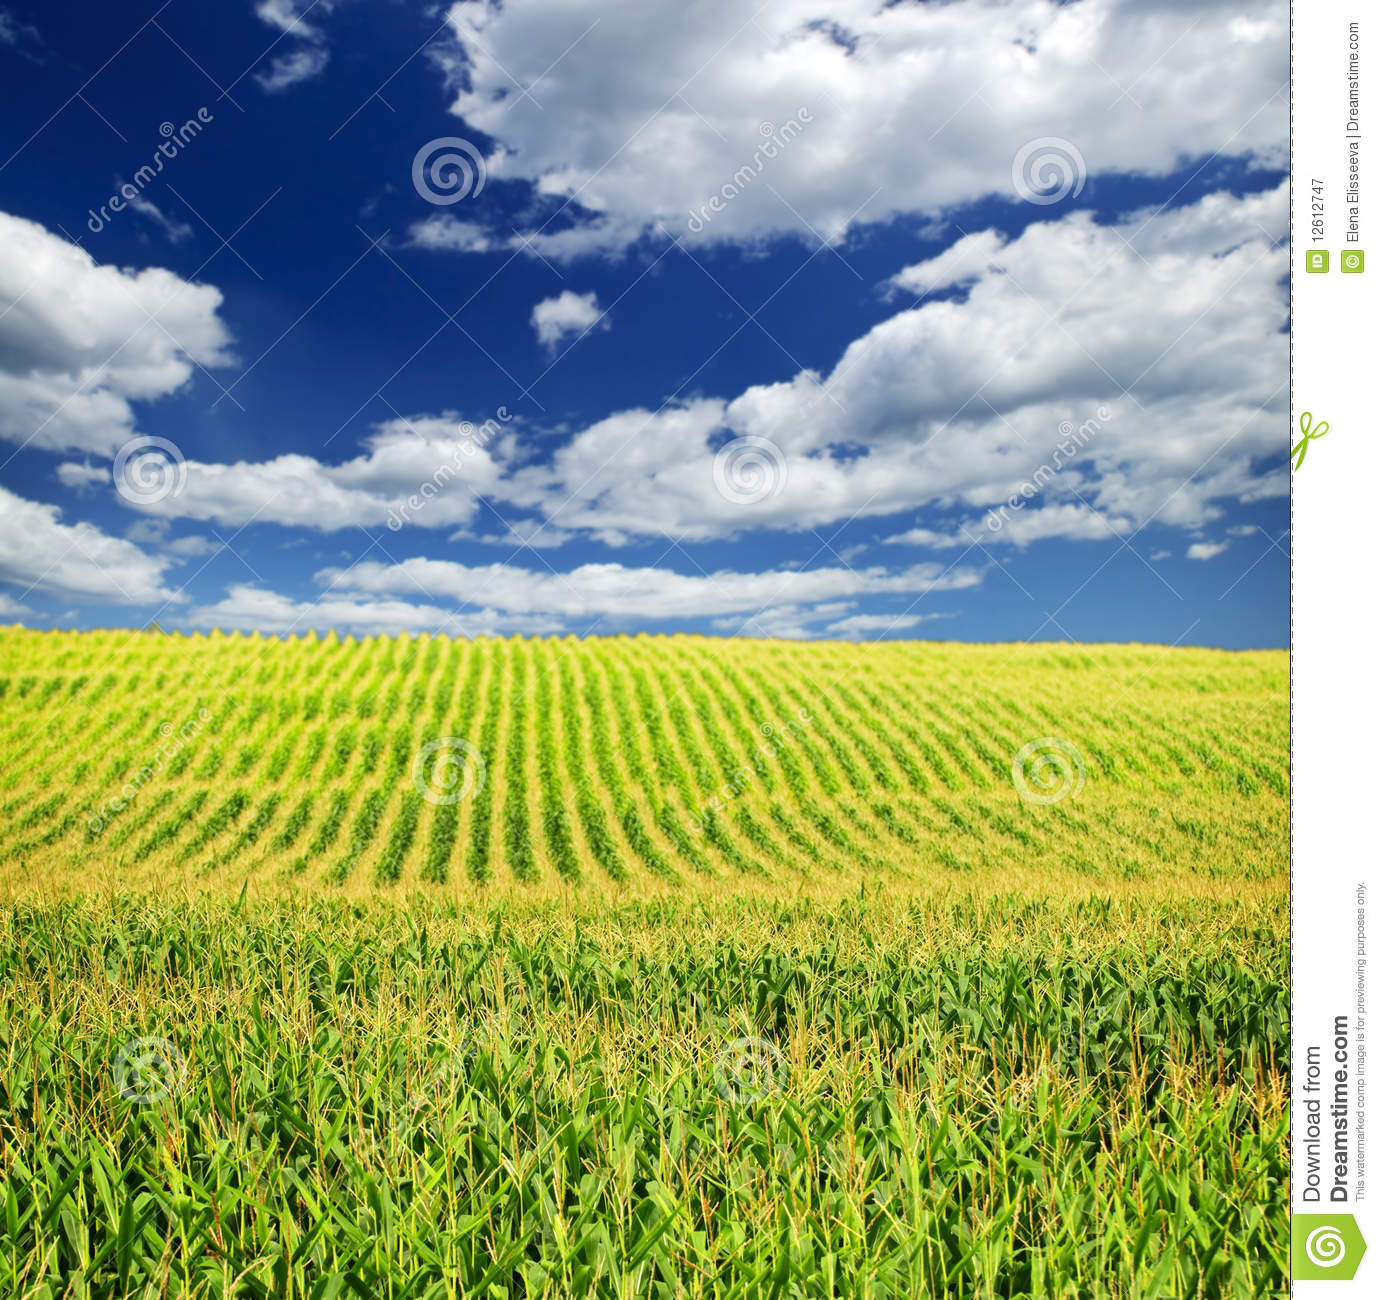 Download Corn field stock image. Image of farmland, horizon, agricultural - 12612747